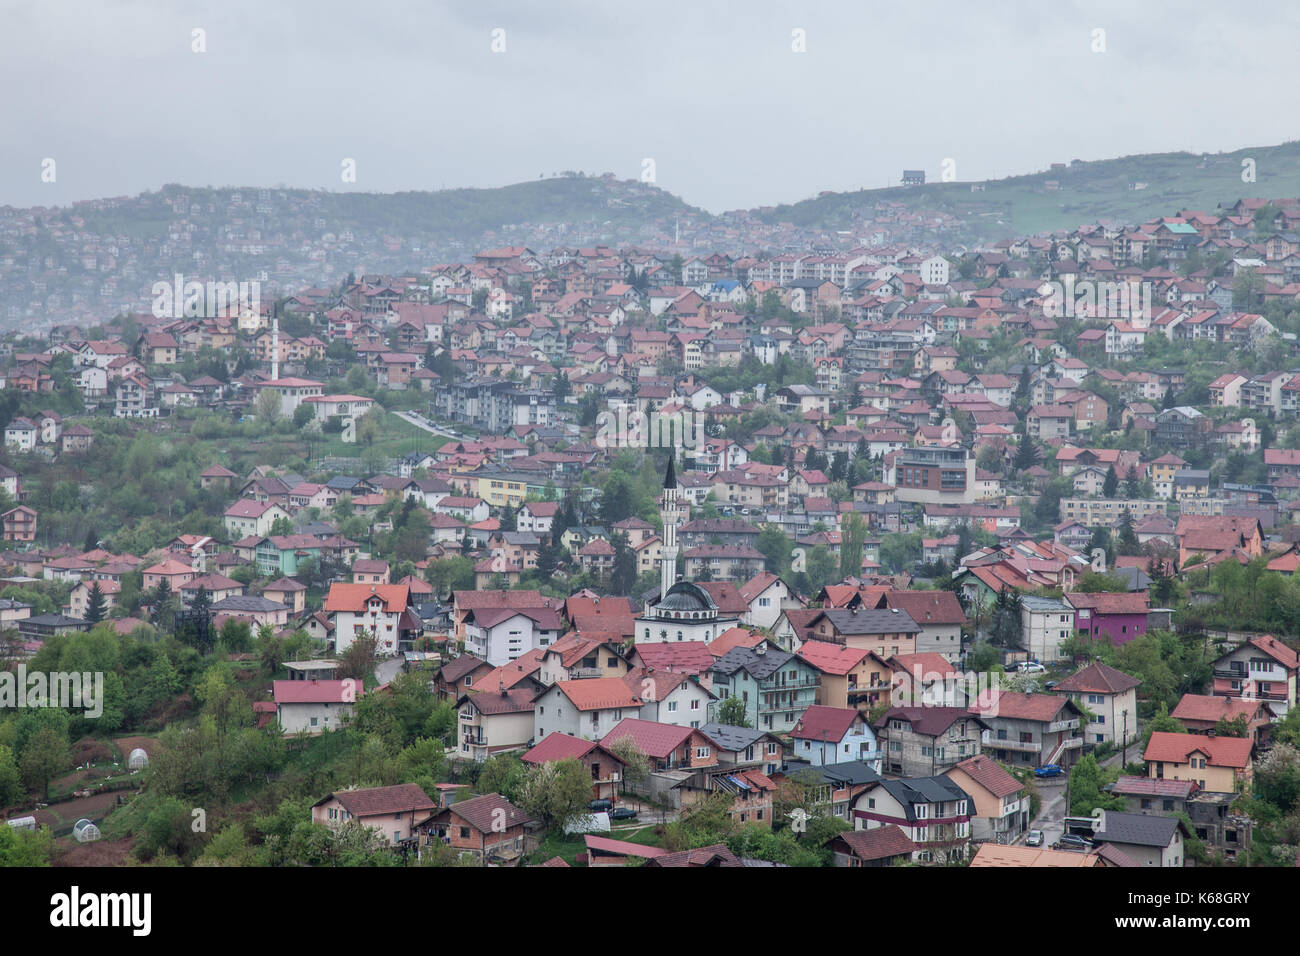 Aerial view of the hills of the suburbs of Sarajevo, Bosnia and Herzegovina during a cloudy and rainly day of spring. A mosque can be seen in front  P - Stock Image